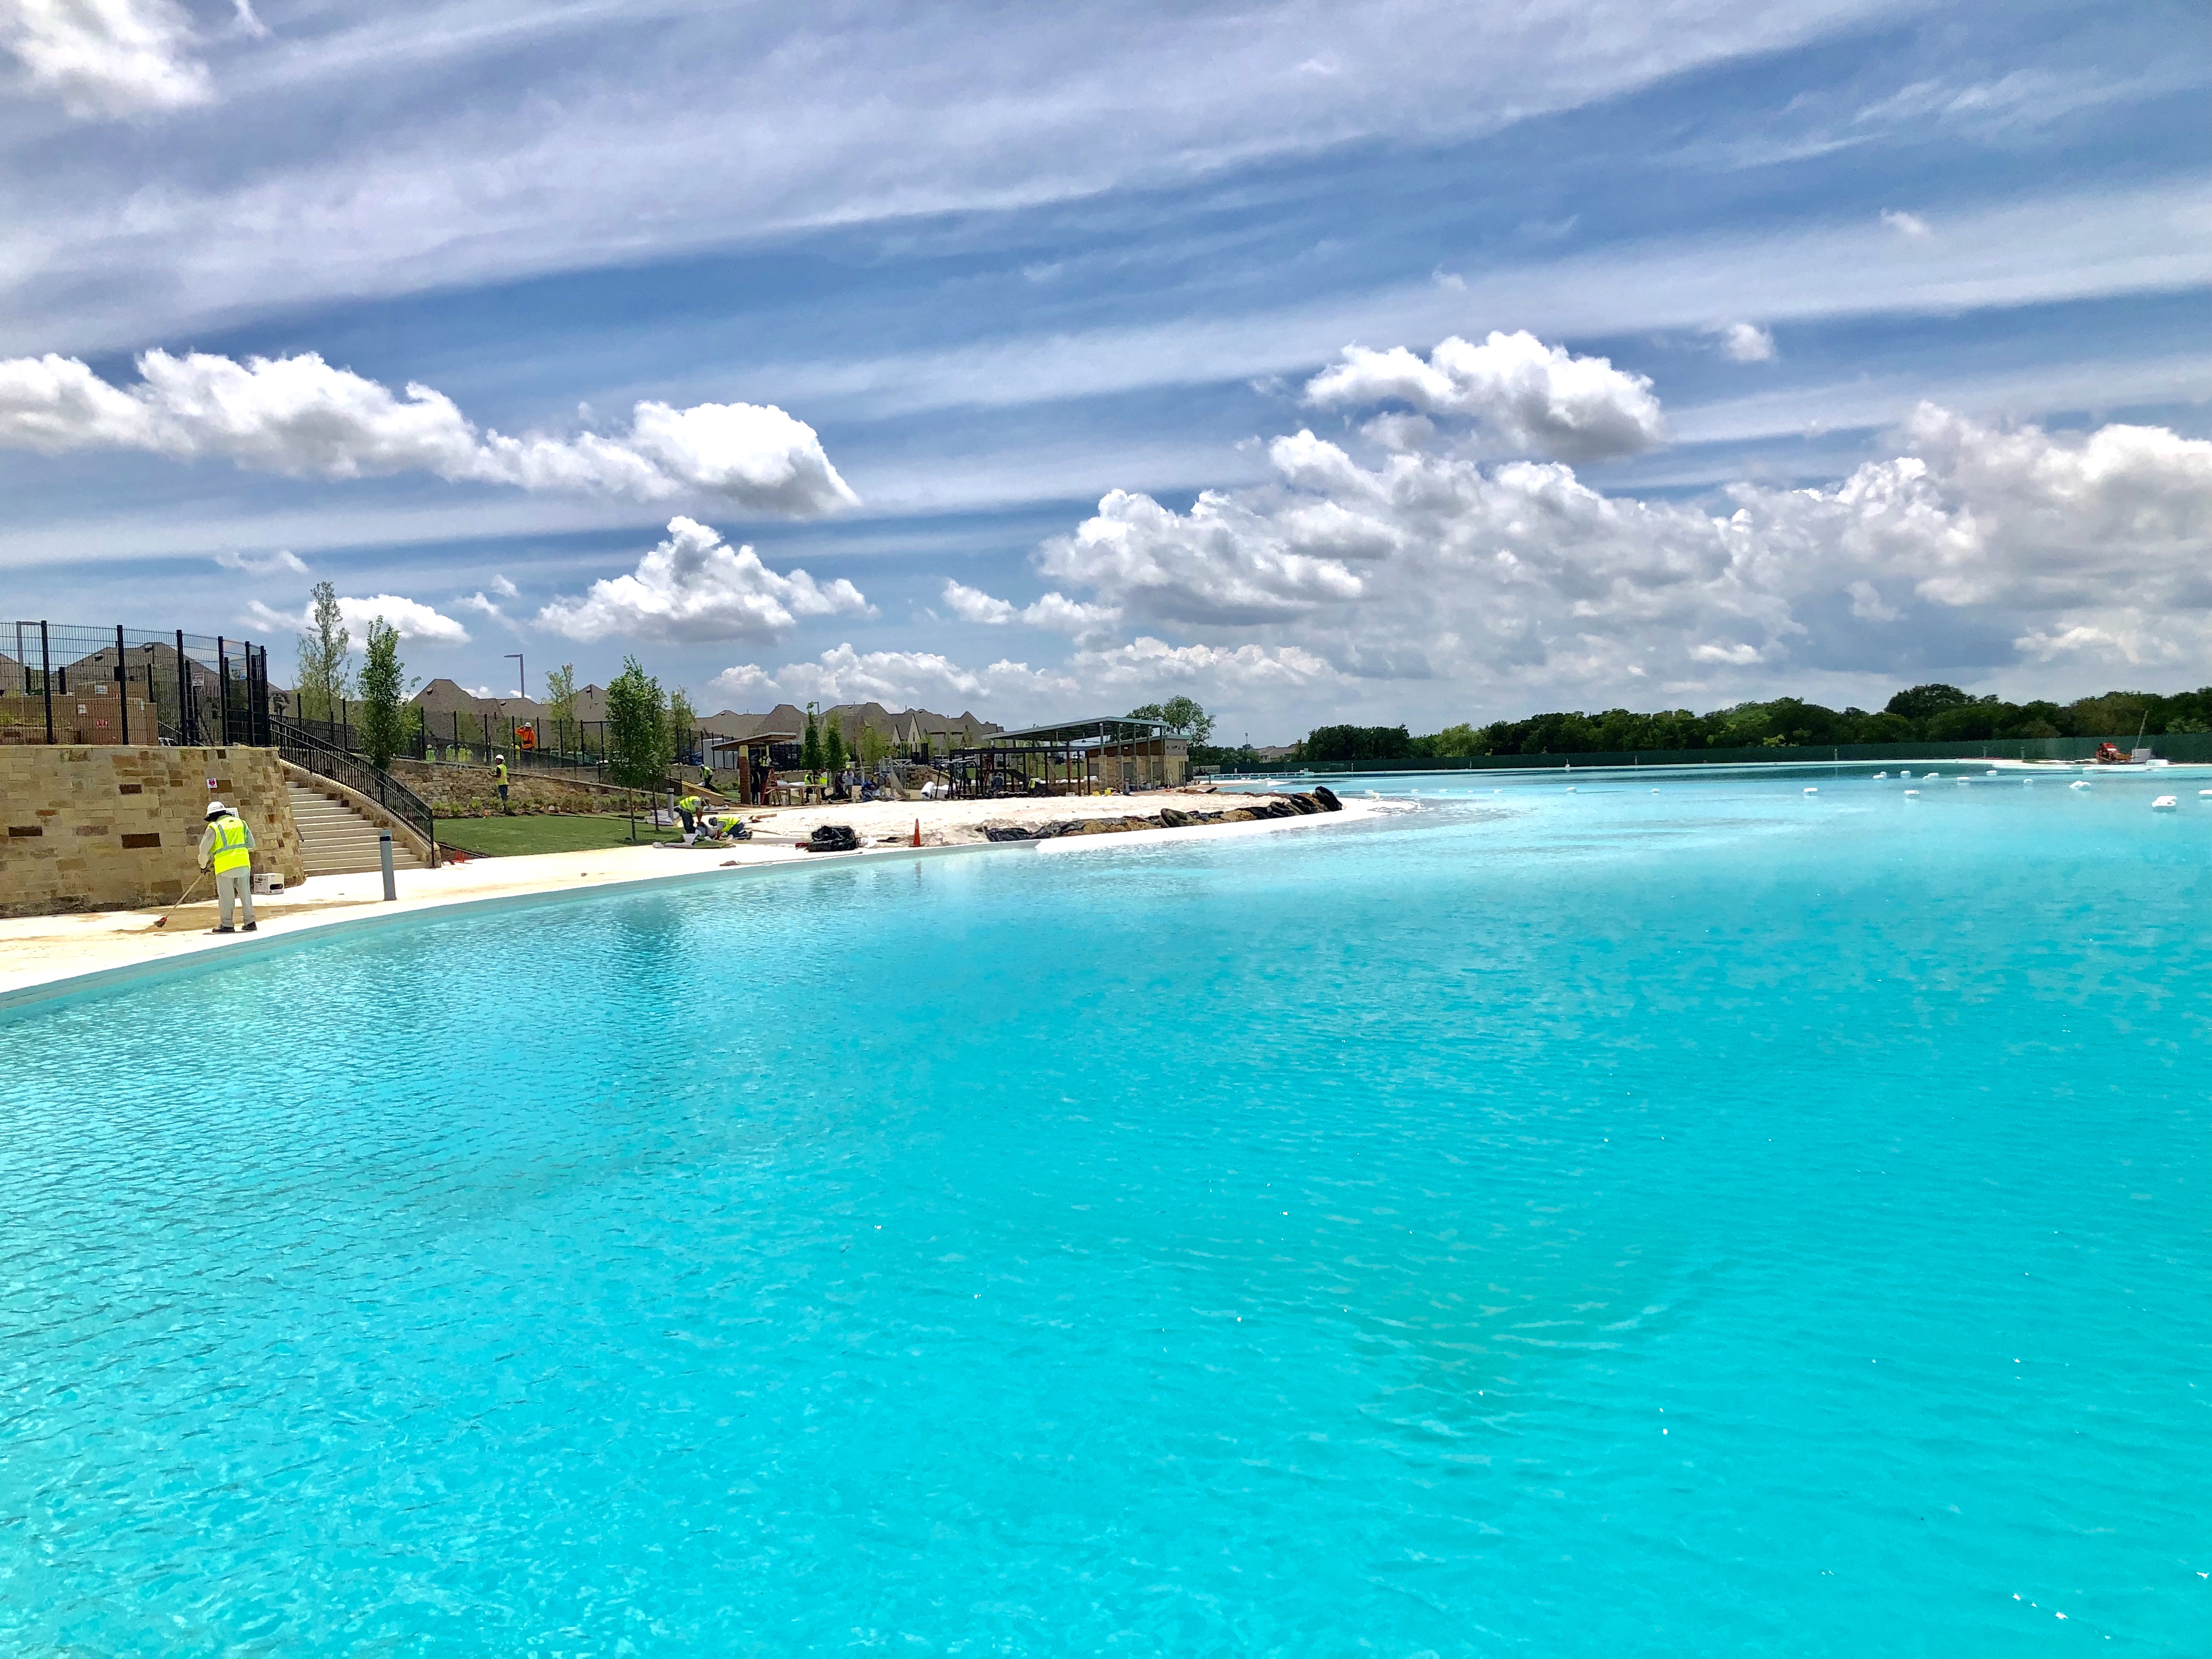 D-FW developers take a dip in Crystal Lagoons | Real Estate | Dallas